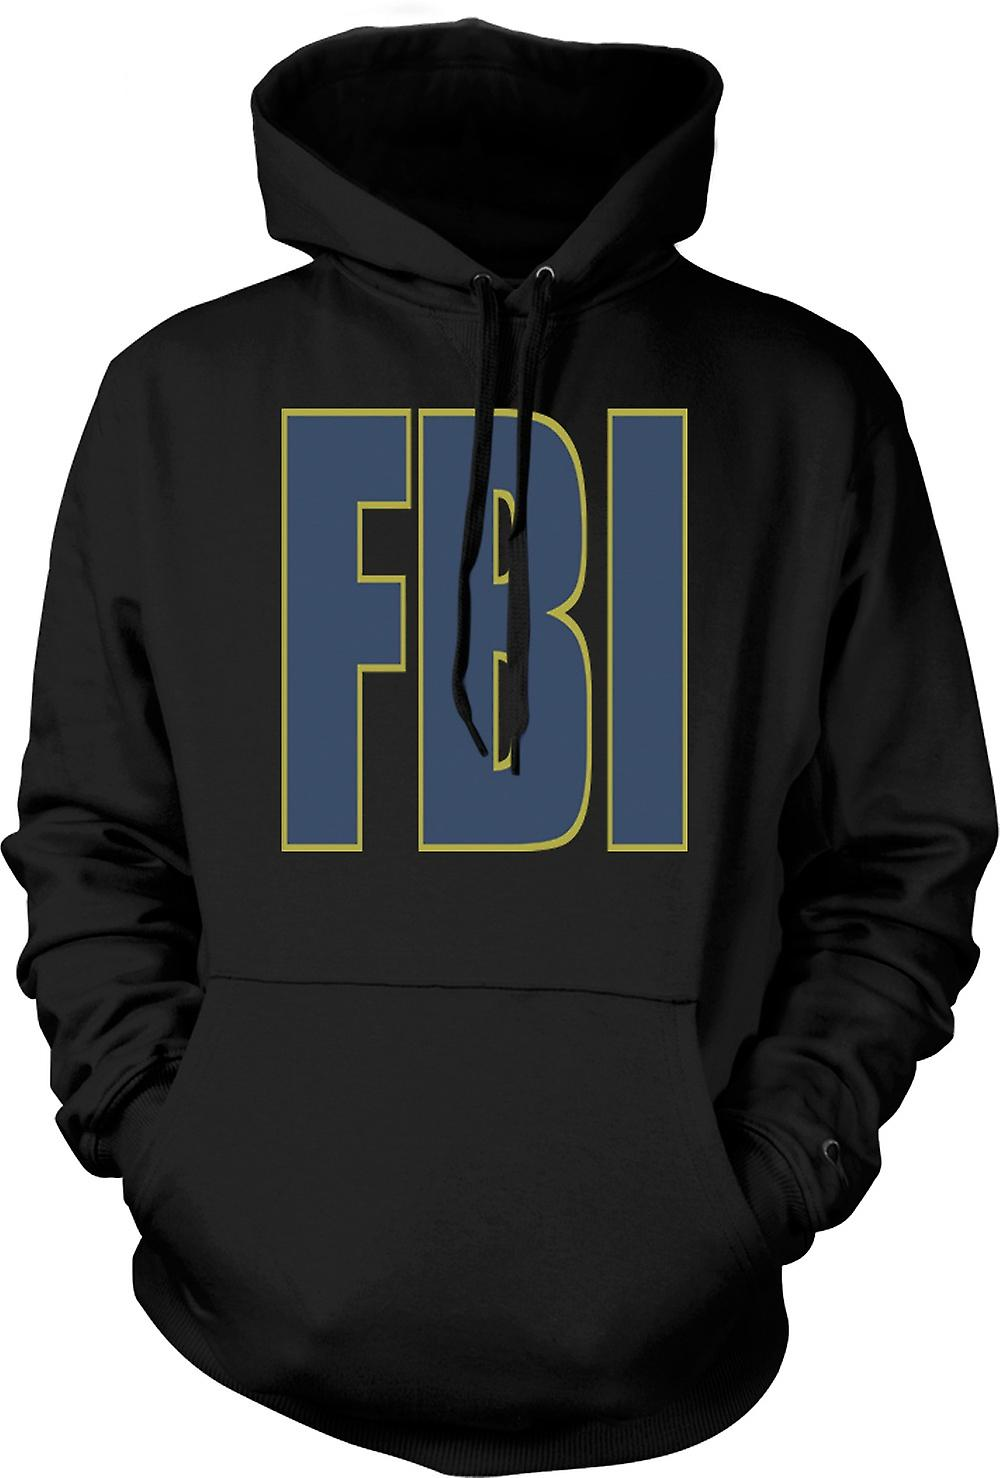 Mens Hoodie - FBI Military - Slogan